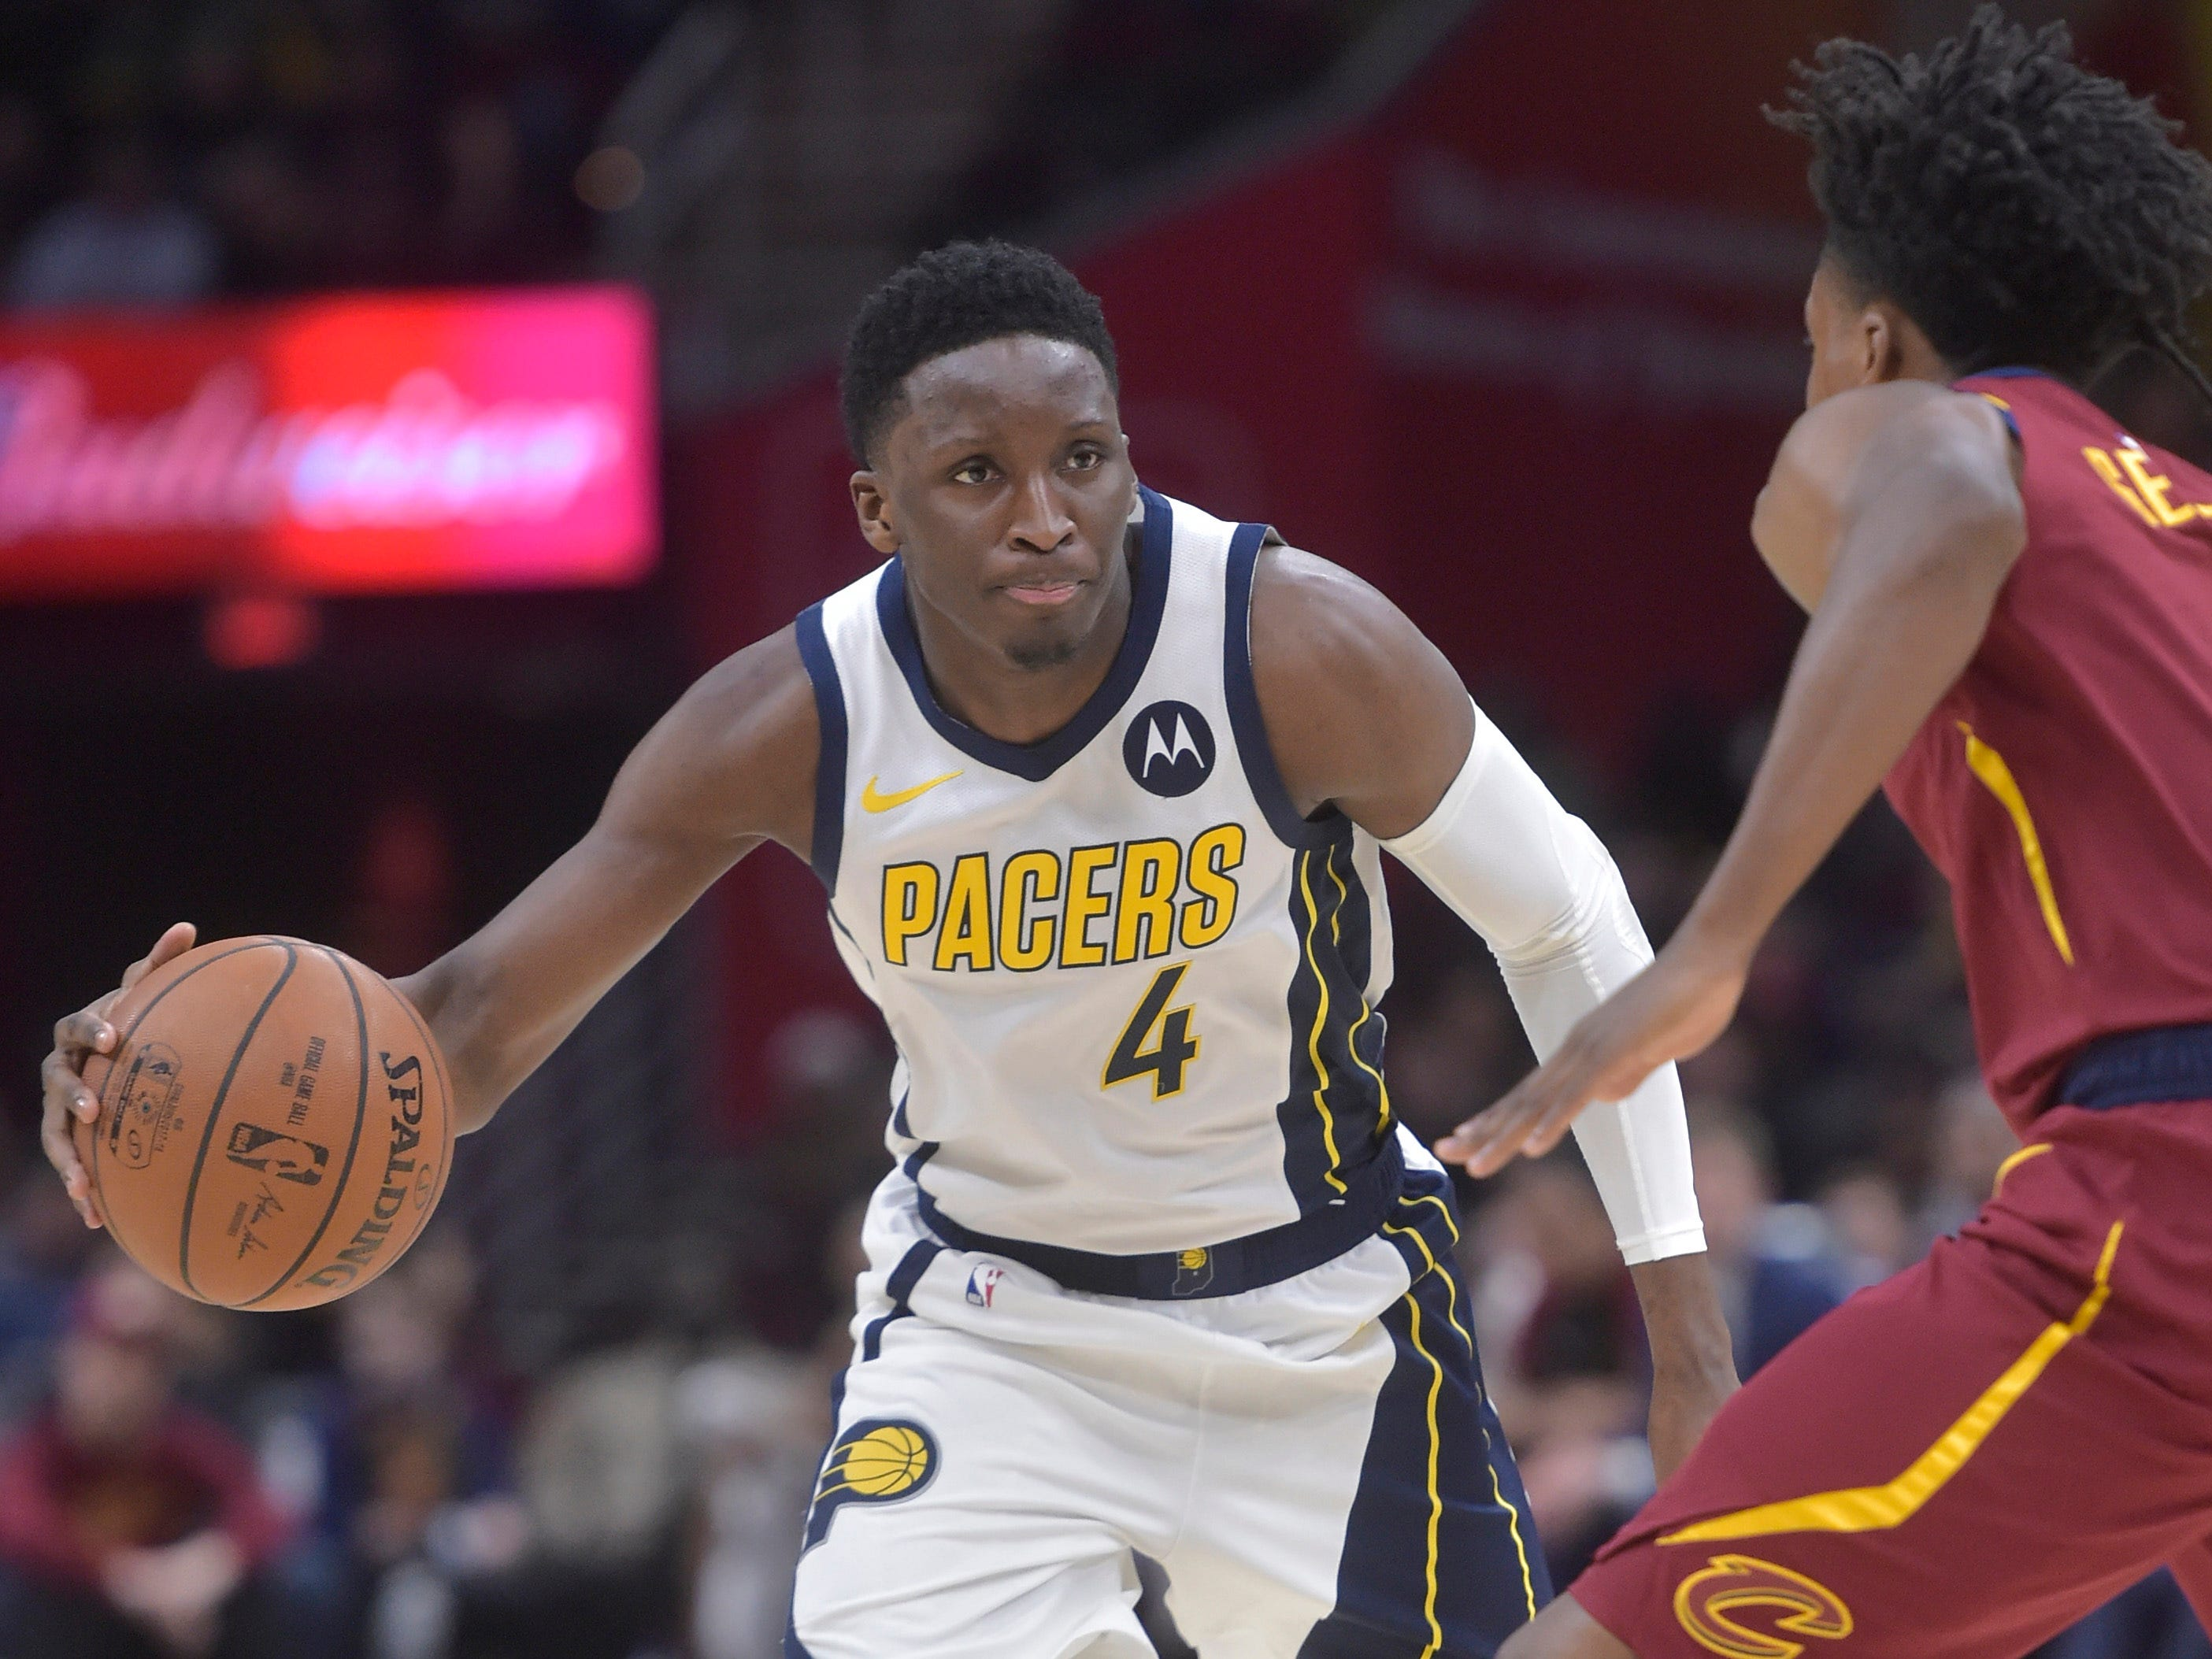 Jan 8, 2019; Cleveland, OH, USA; Indiana Pacers guard Victor Oladipo (4) dribbles against Cleveland Cavaliers guard Collin Sexton (2) in the second quarter at Quicken Loans Arena.